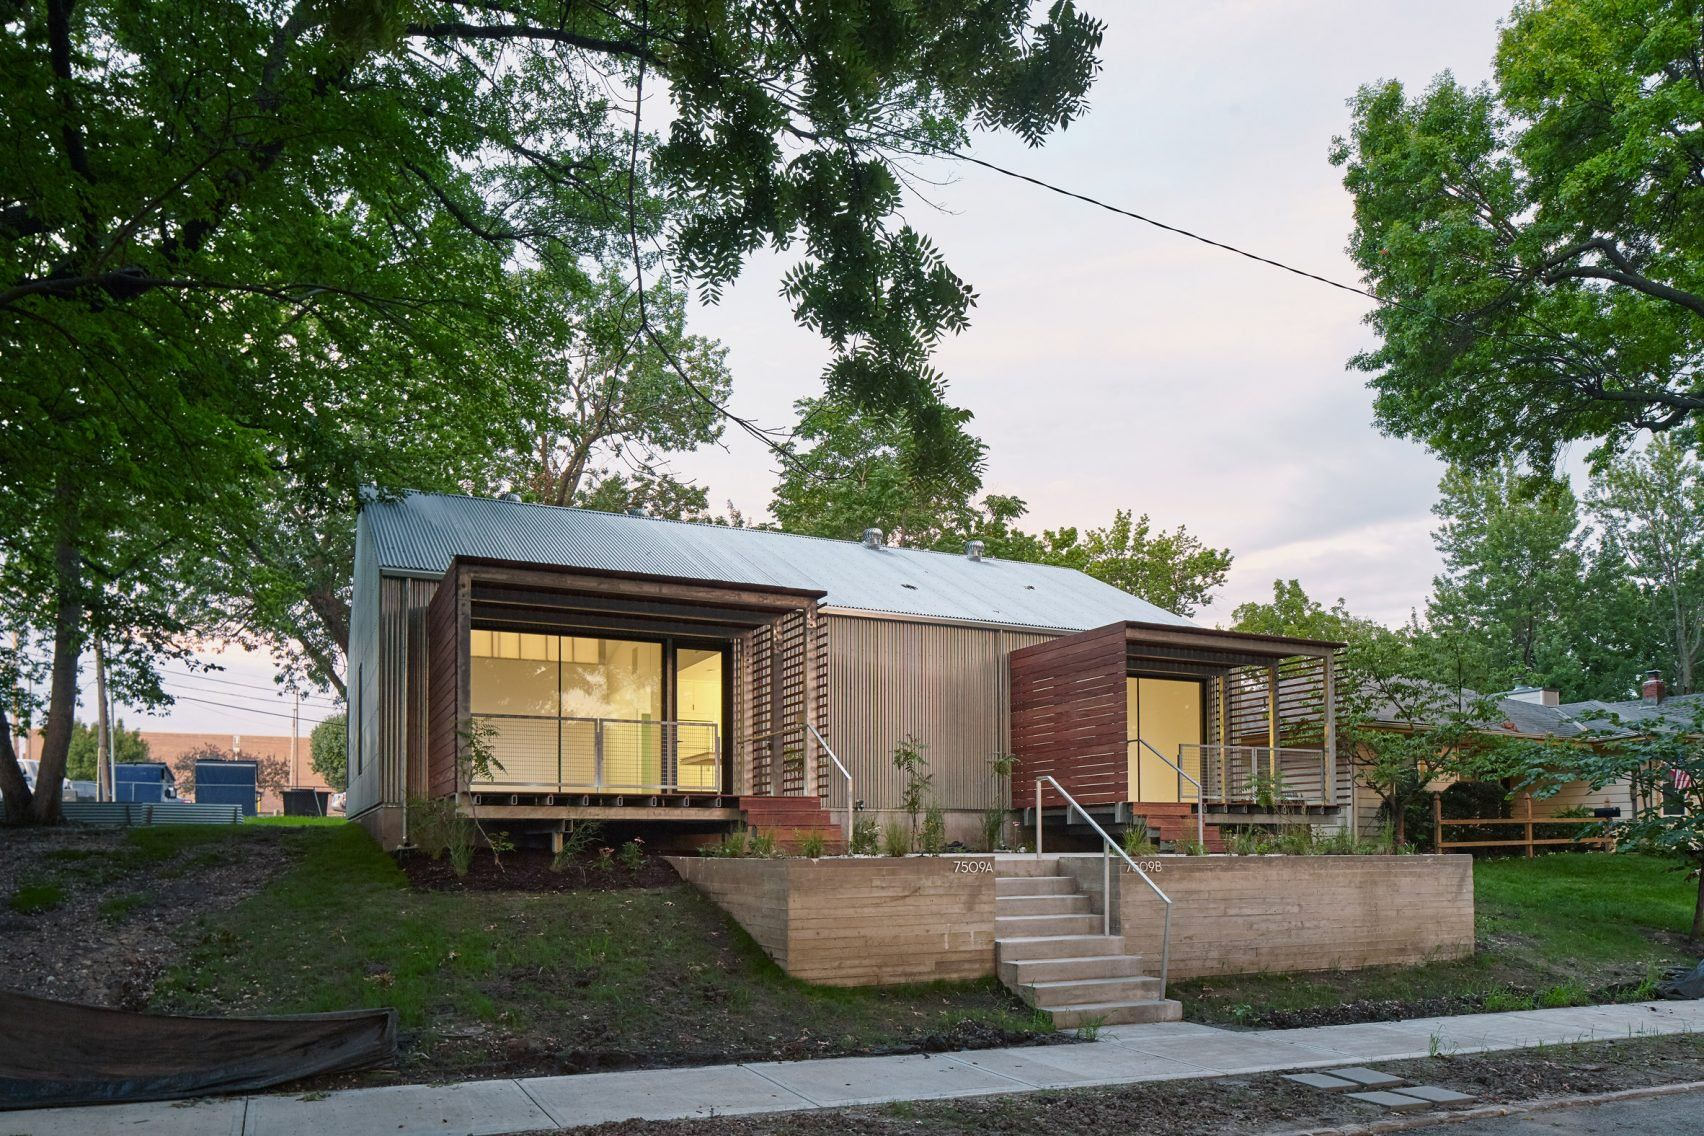 Architecture students build modern duplex for low income families curbedclockmenumore arrownoyes neat